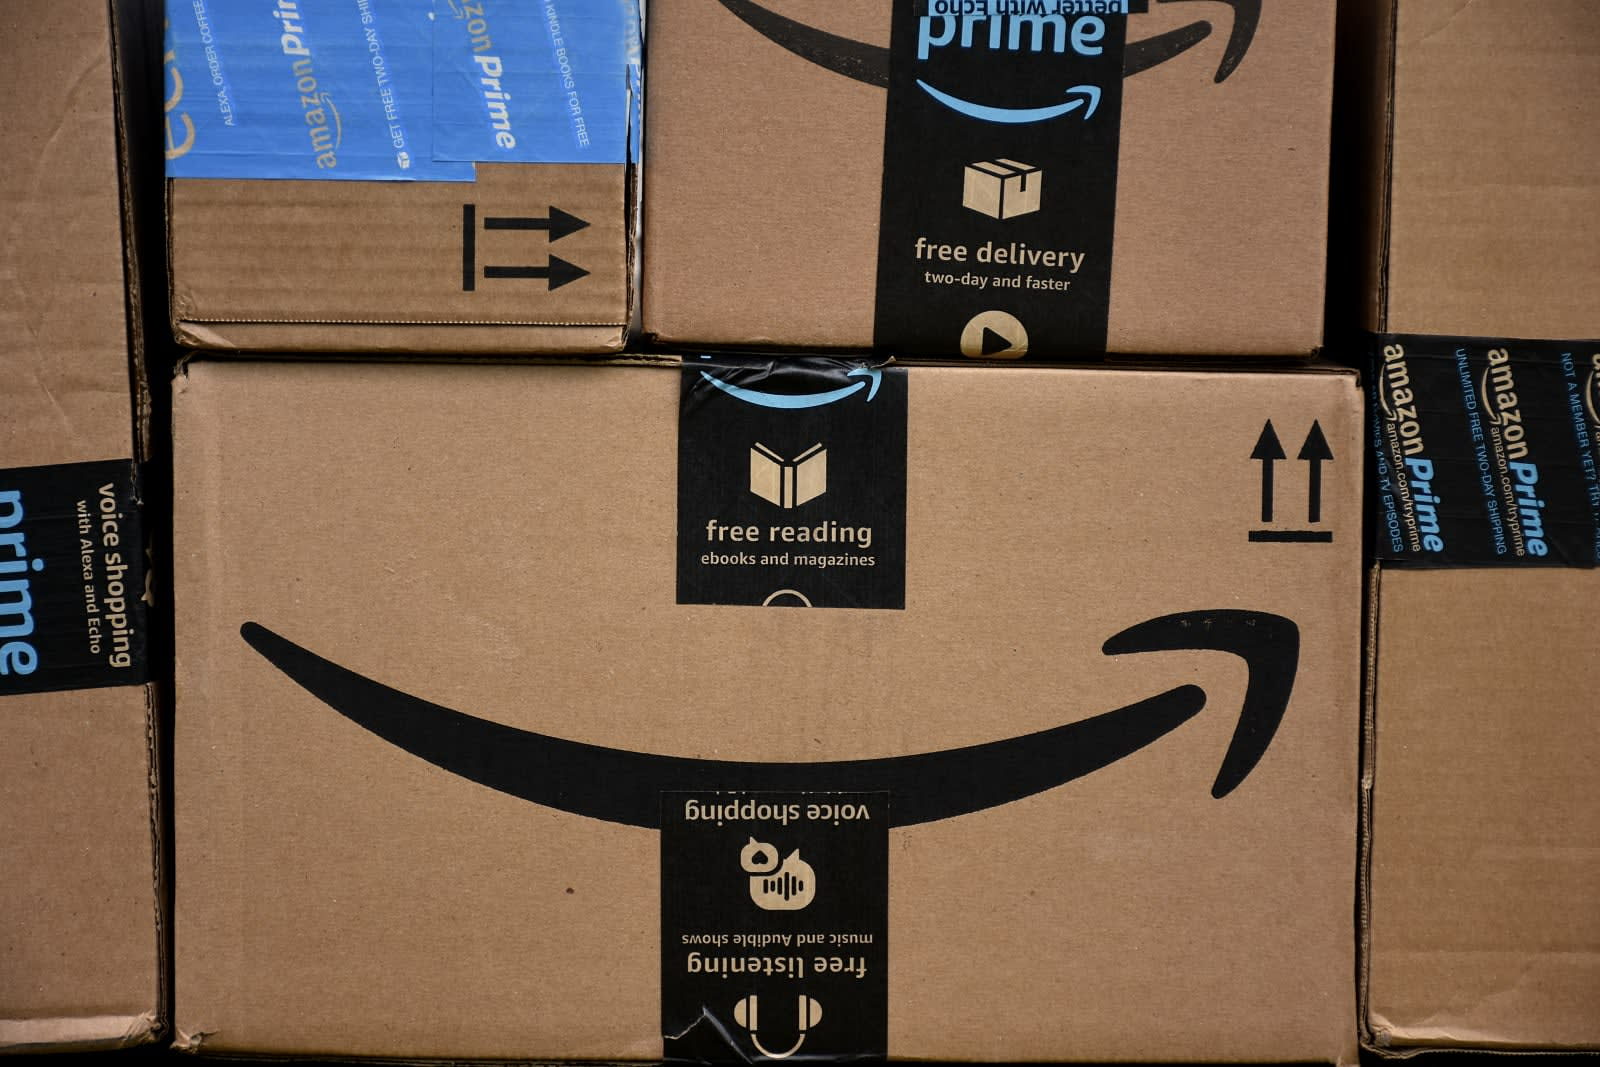 Amazon extends discounted Prime memberships to Medicaid